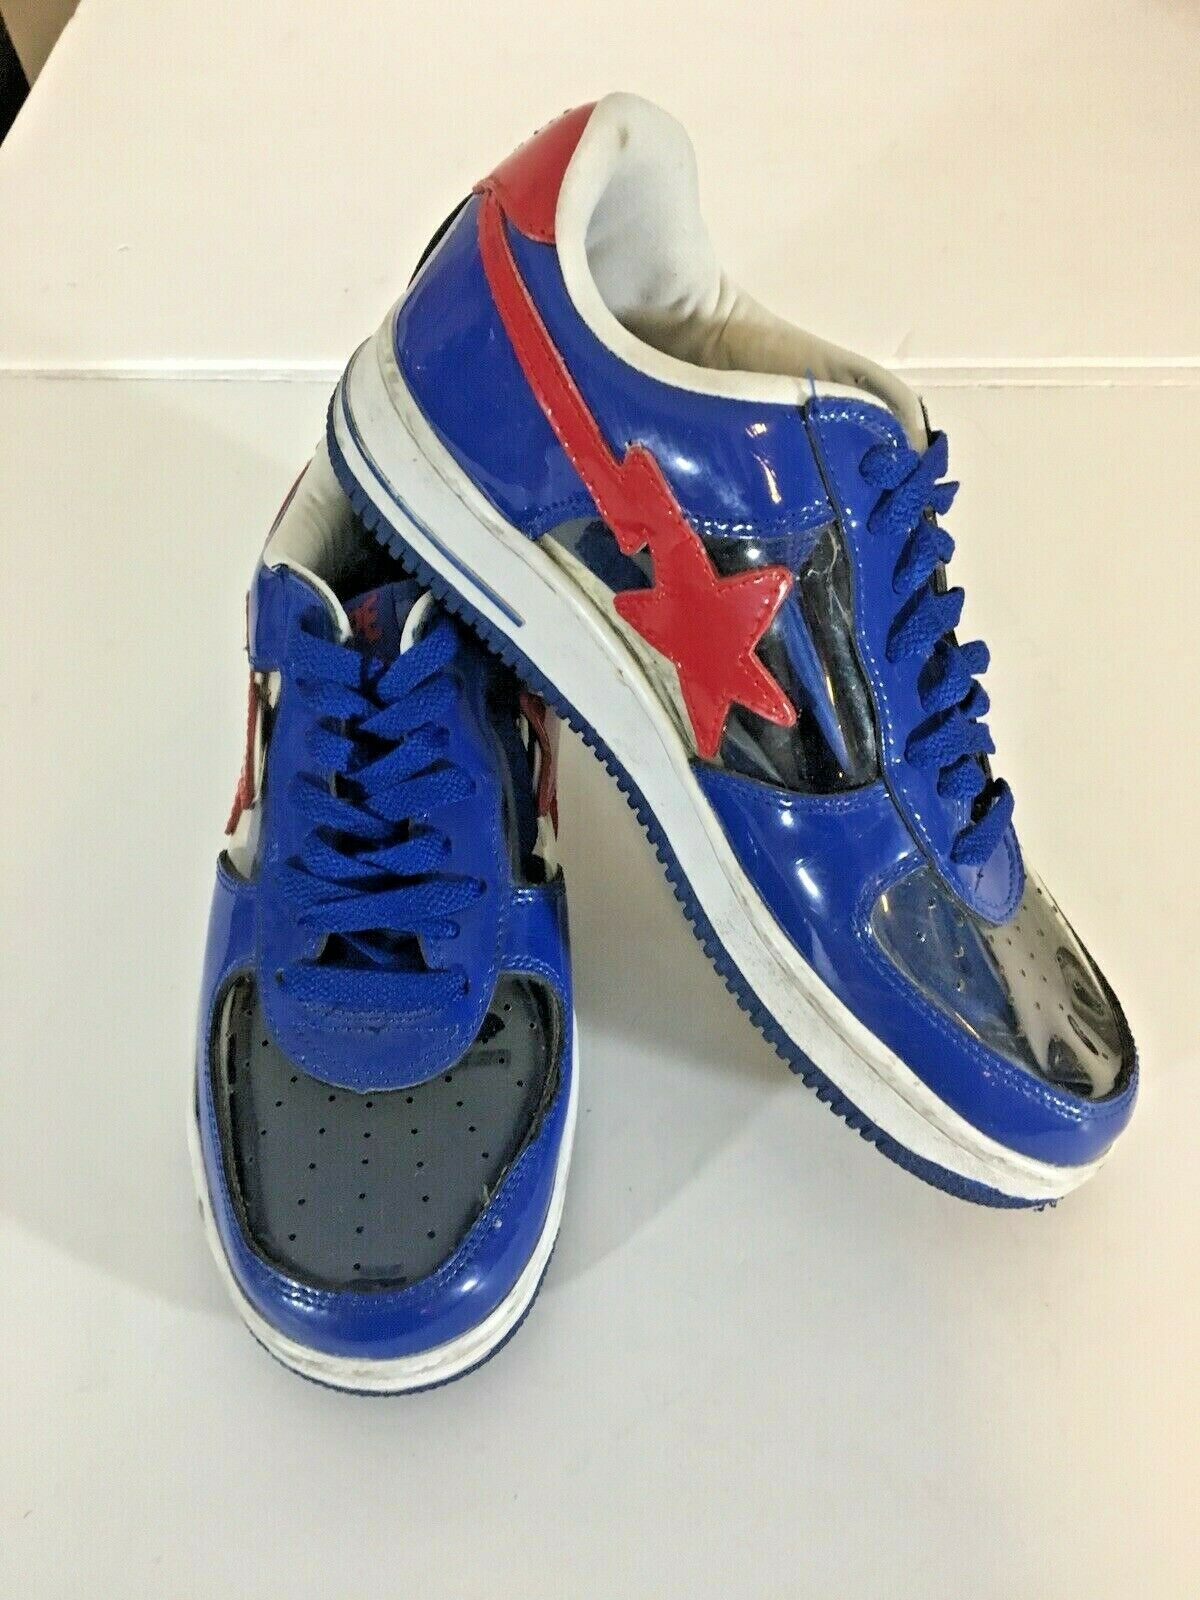 A BATHING APE BAPE STA FOOT SOLDIER FS-001 SNEAKERS blueE RED CLEAR PATENT SZ 9.5